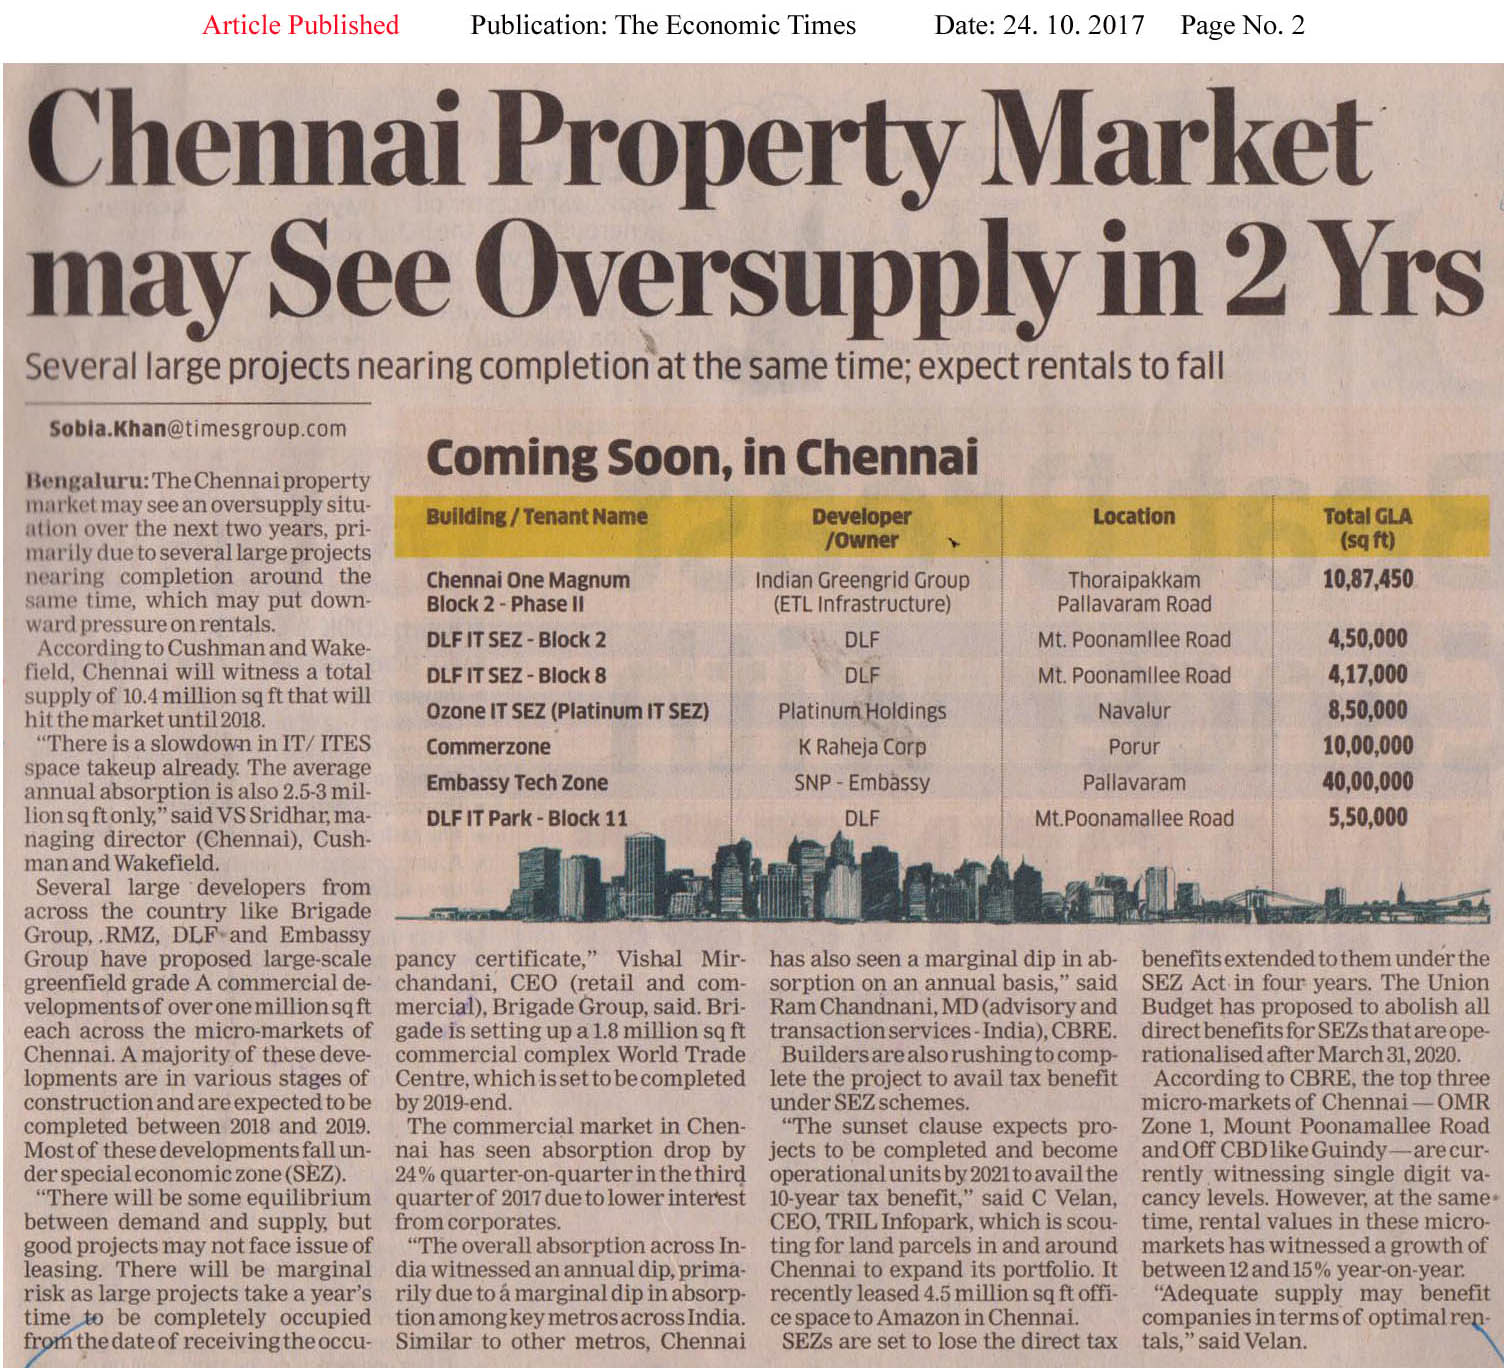 Chennai real estate market may see oversupply in 2 years—The Economic Times-Bangalore Edition